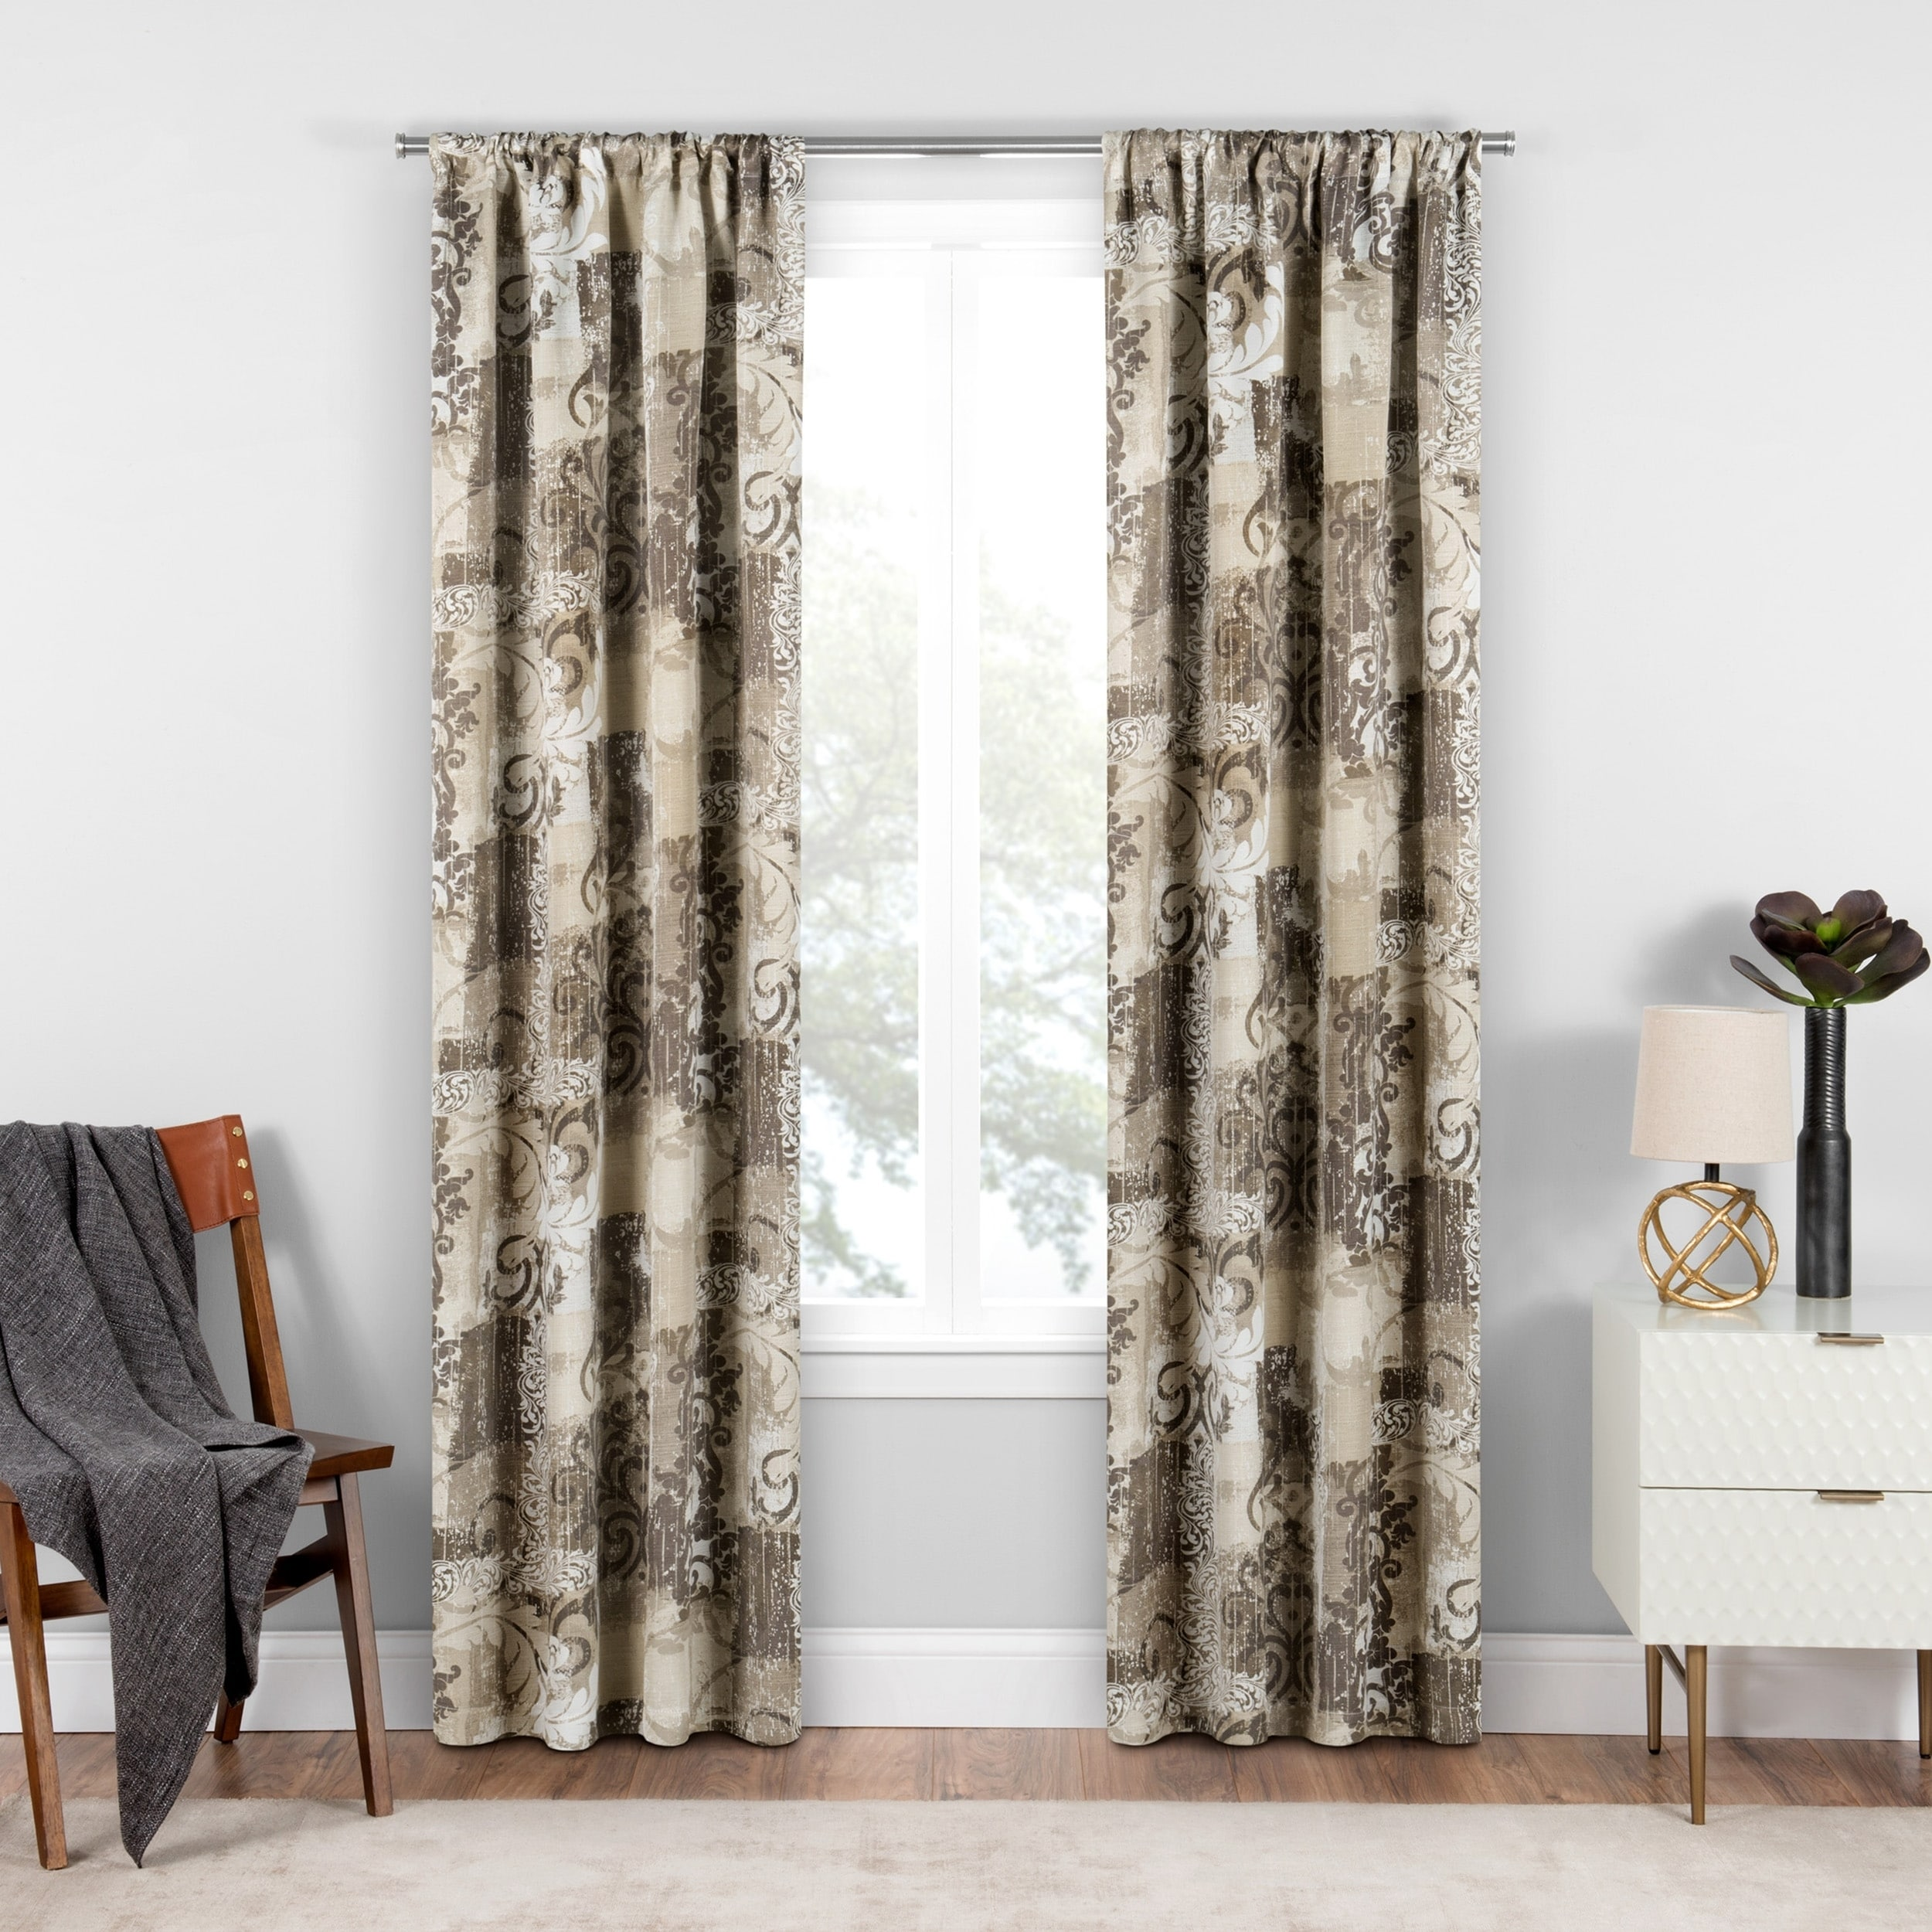 soft product solid bedroom for from shades room modern velvet super curtains living blackout color curtain matte theater window norne drapes